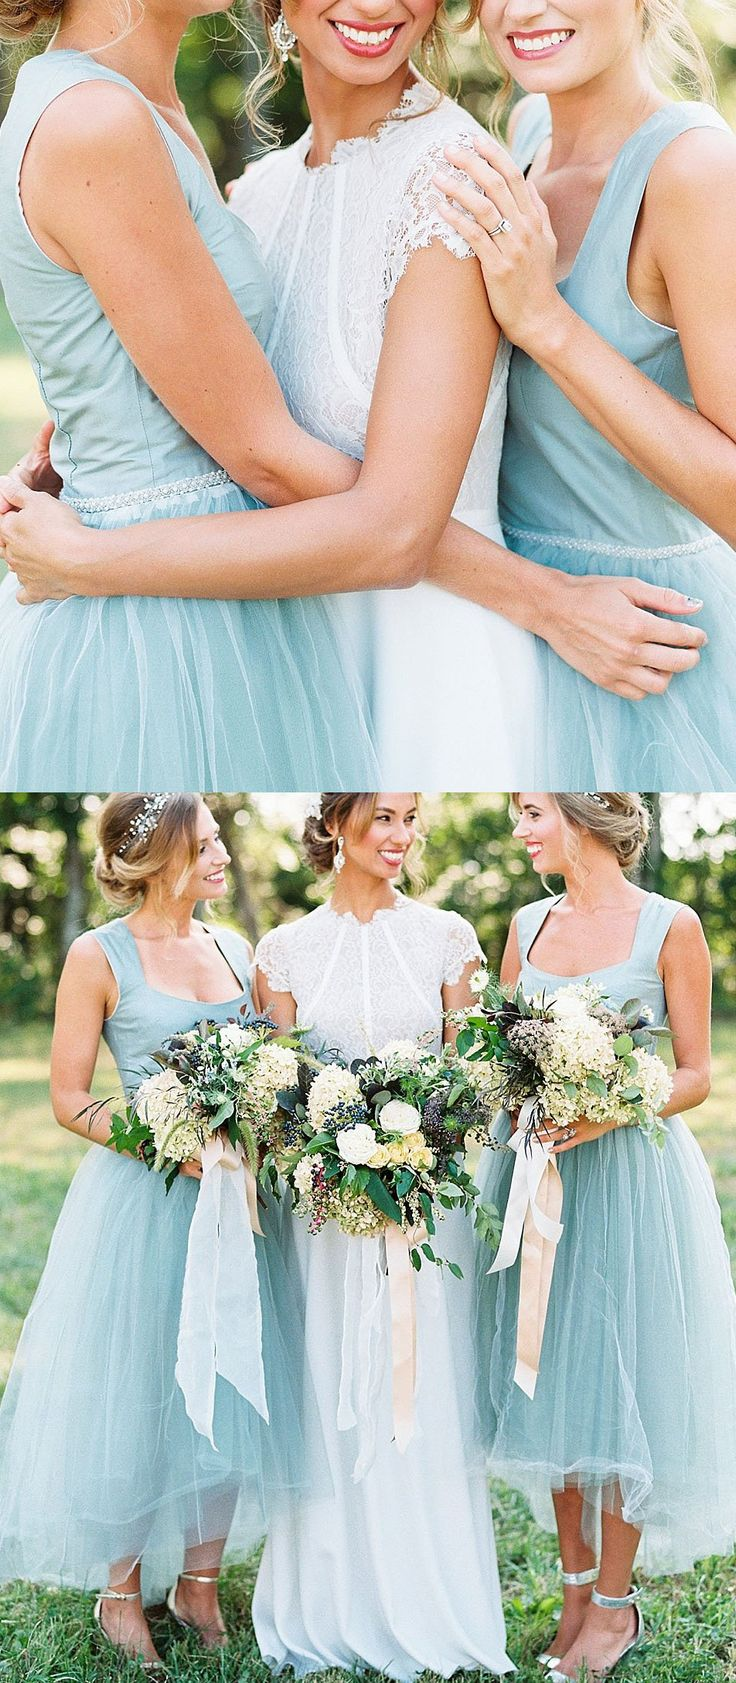 Blue Bridesmaid Dresses, Long Bridesmaid Dresses, Bridesmaid Dresses Blue, Light Blue Bridesmaid Dresses, Light Blue dresses, Long Blue dresses, Custom Made Dresses, Zipper Bridesmaid Dresses, Pleated Bridesmaid Dresses, Asymmetrical Bridesmaid Dresses, Straps Bridesmaid Dresses